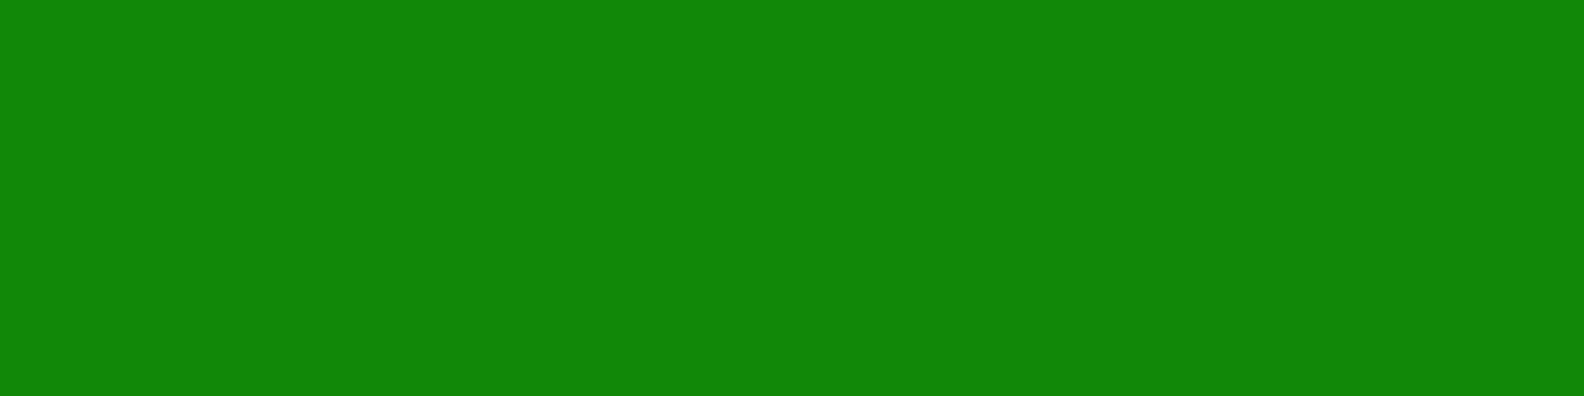 1584x396 India Green Solid Color Background